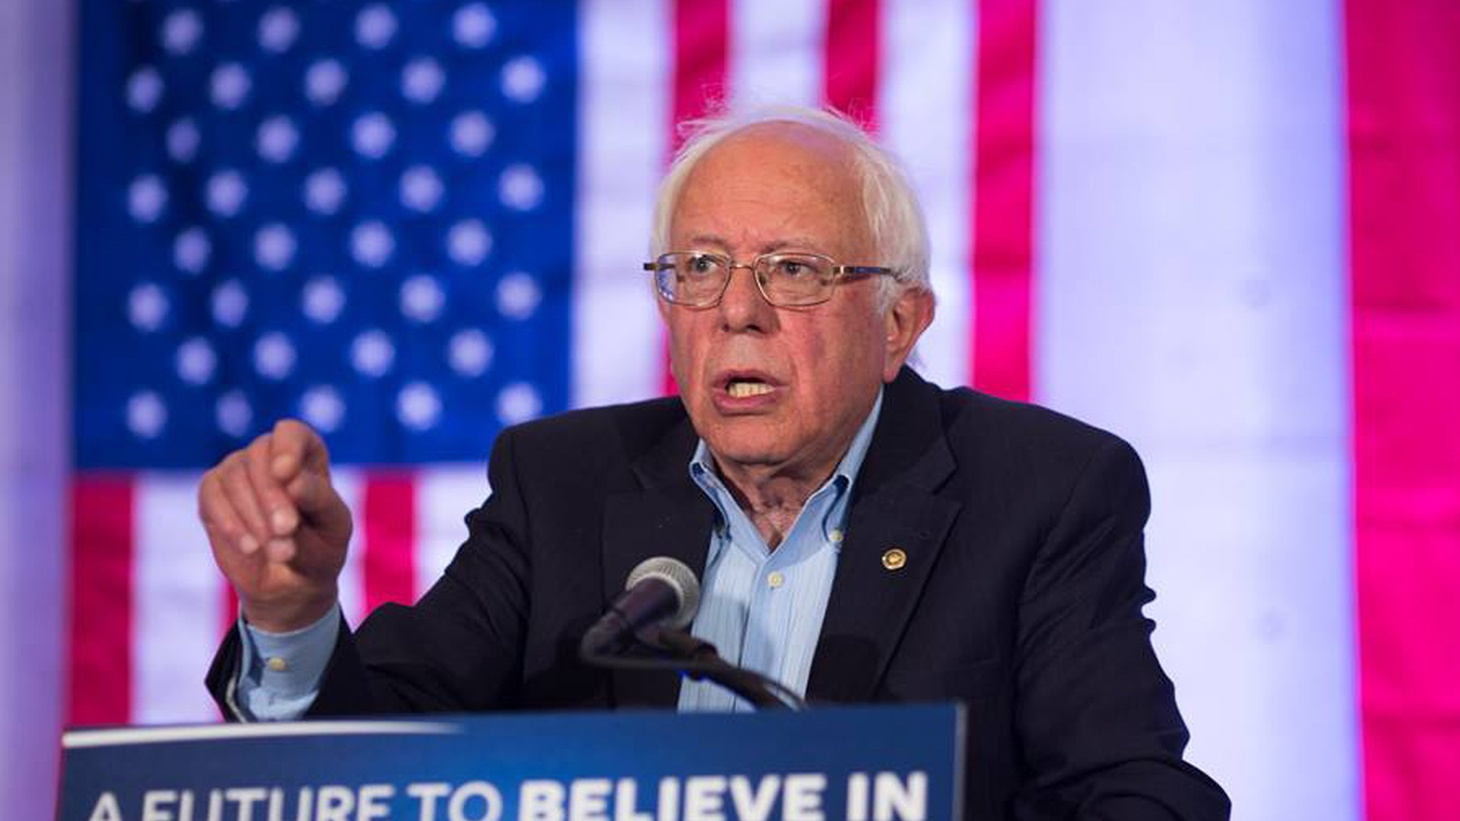 Donald Trump clinched the Republican nomination today but, on the Democratic side, Bernie Sanders is not ready to concede to Hillary Clinton. We hear what the Party is doing to make peace and whether it's working.